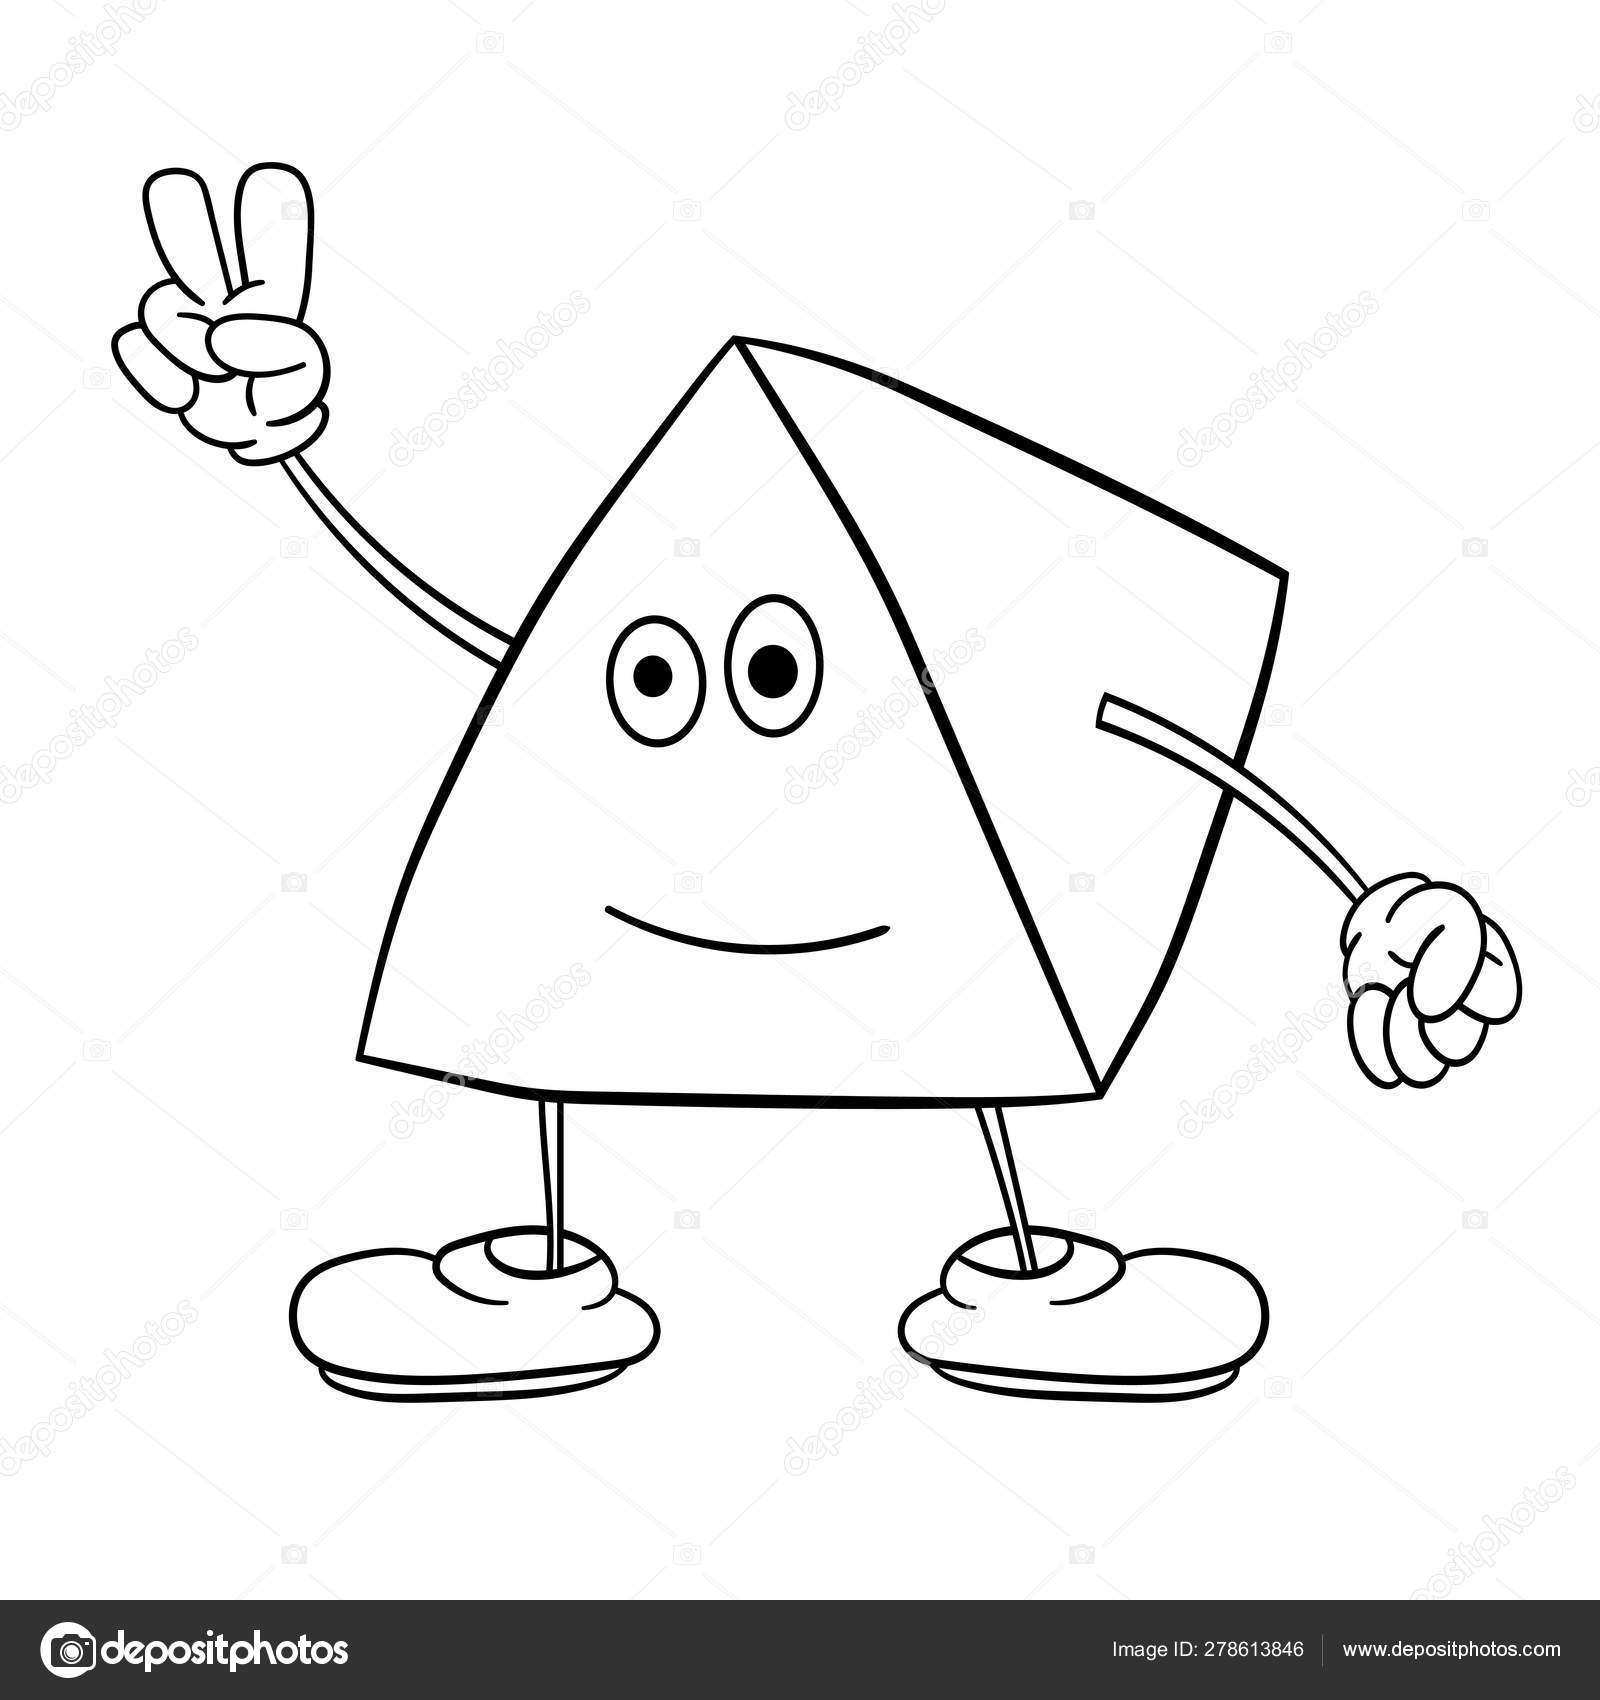 Funny triangle smiley with legs and eyes shows two fingers ...